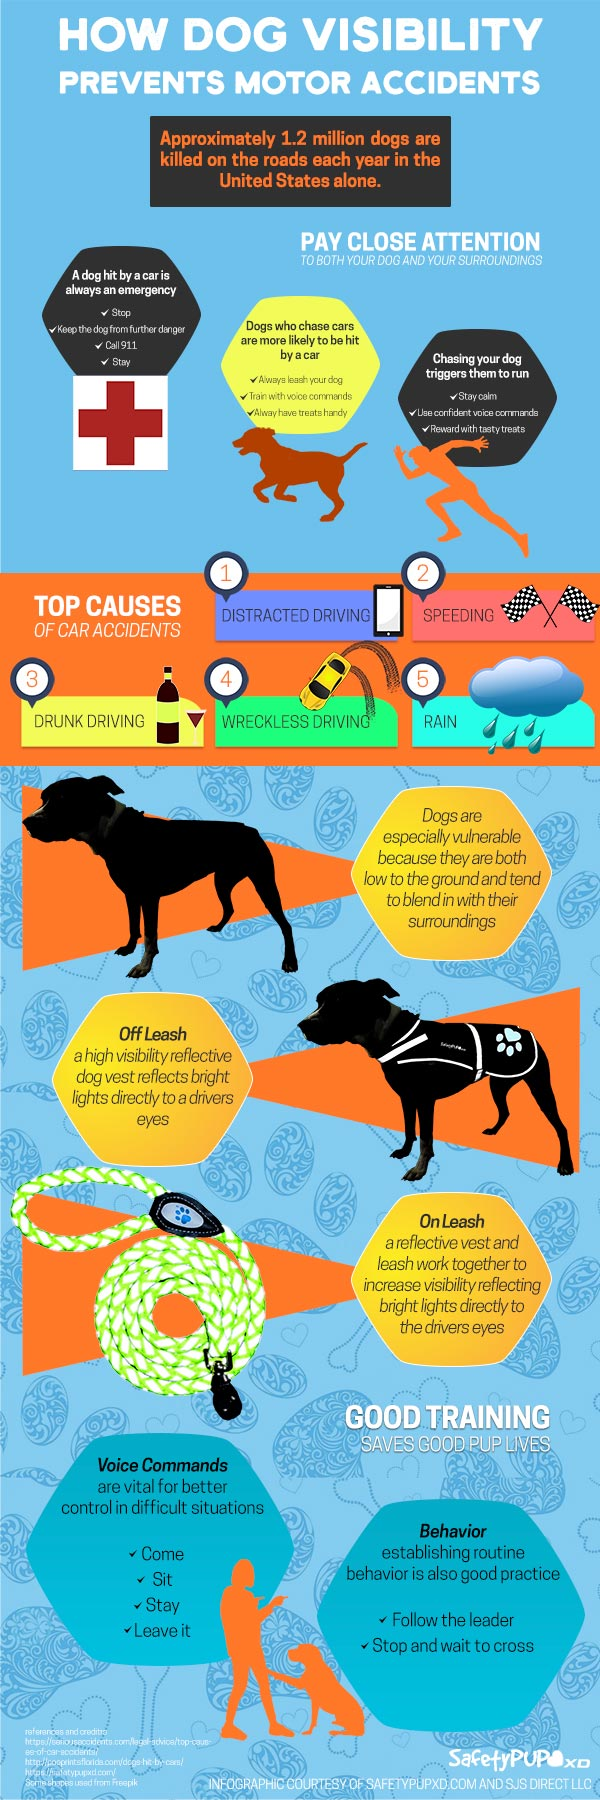 reflective dog vest how visibility prevents motor accidents with cars infographic